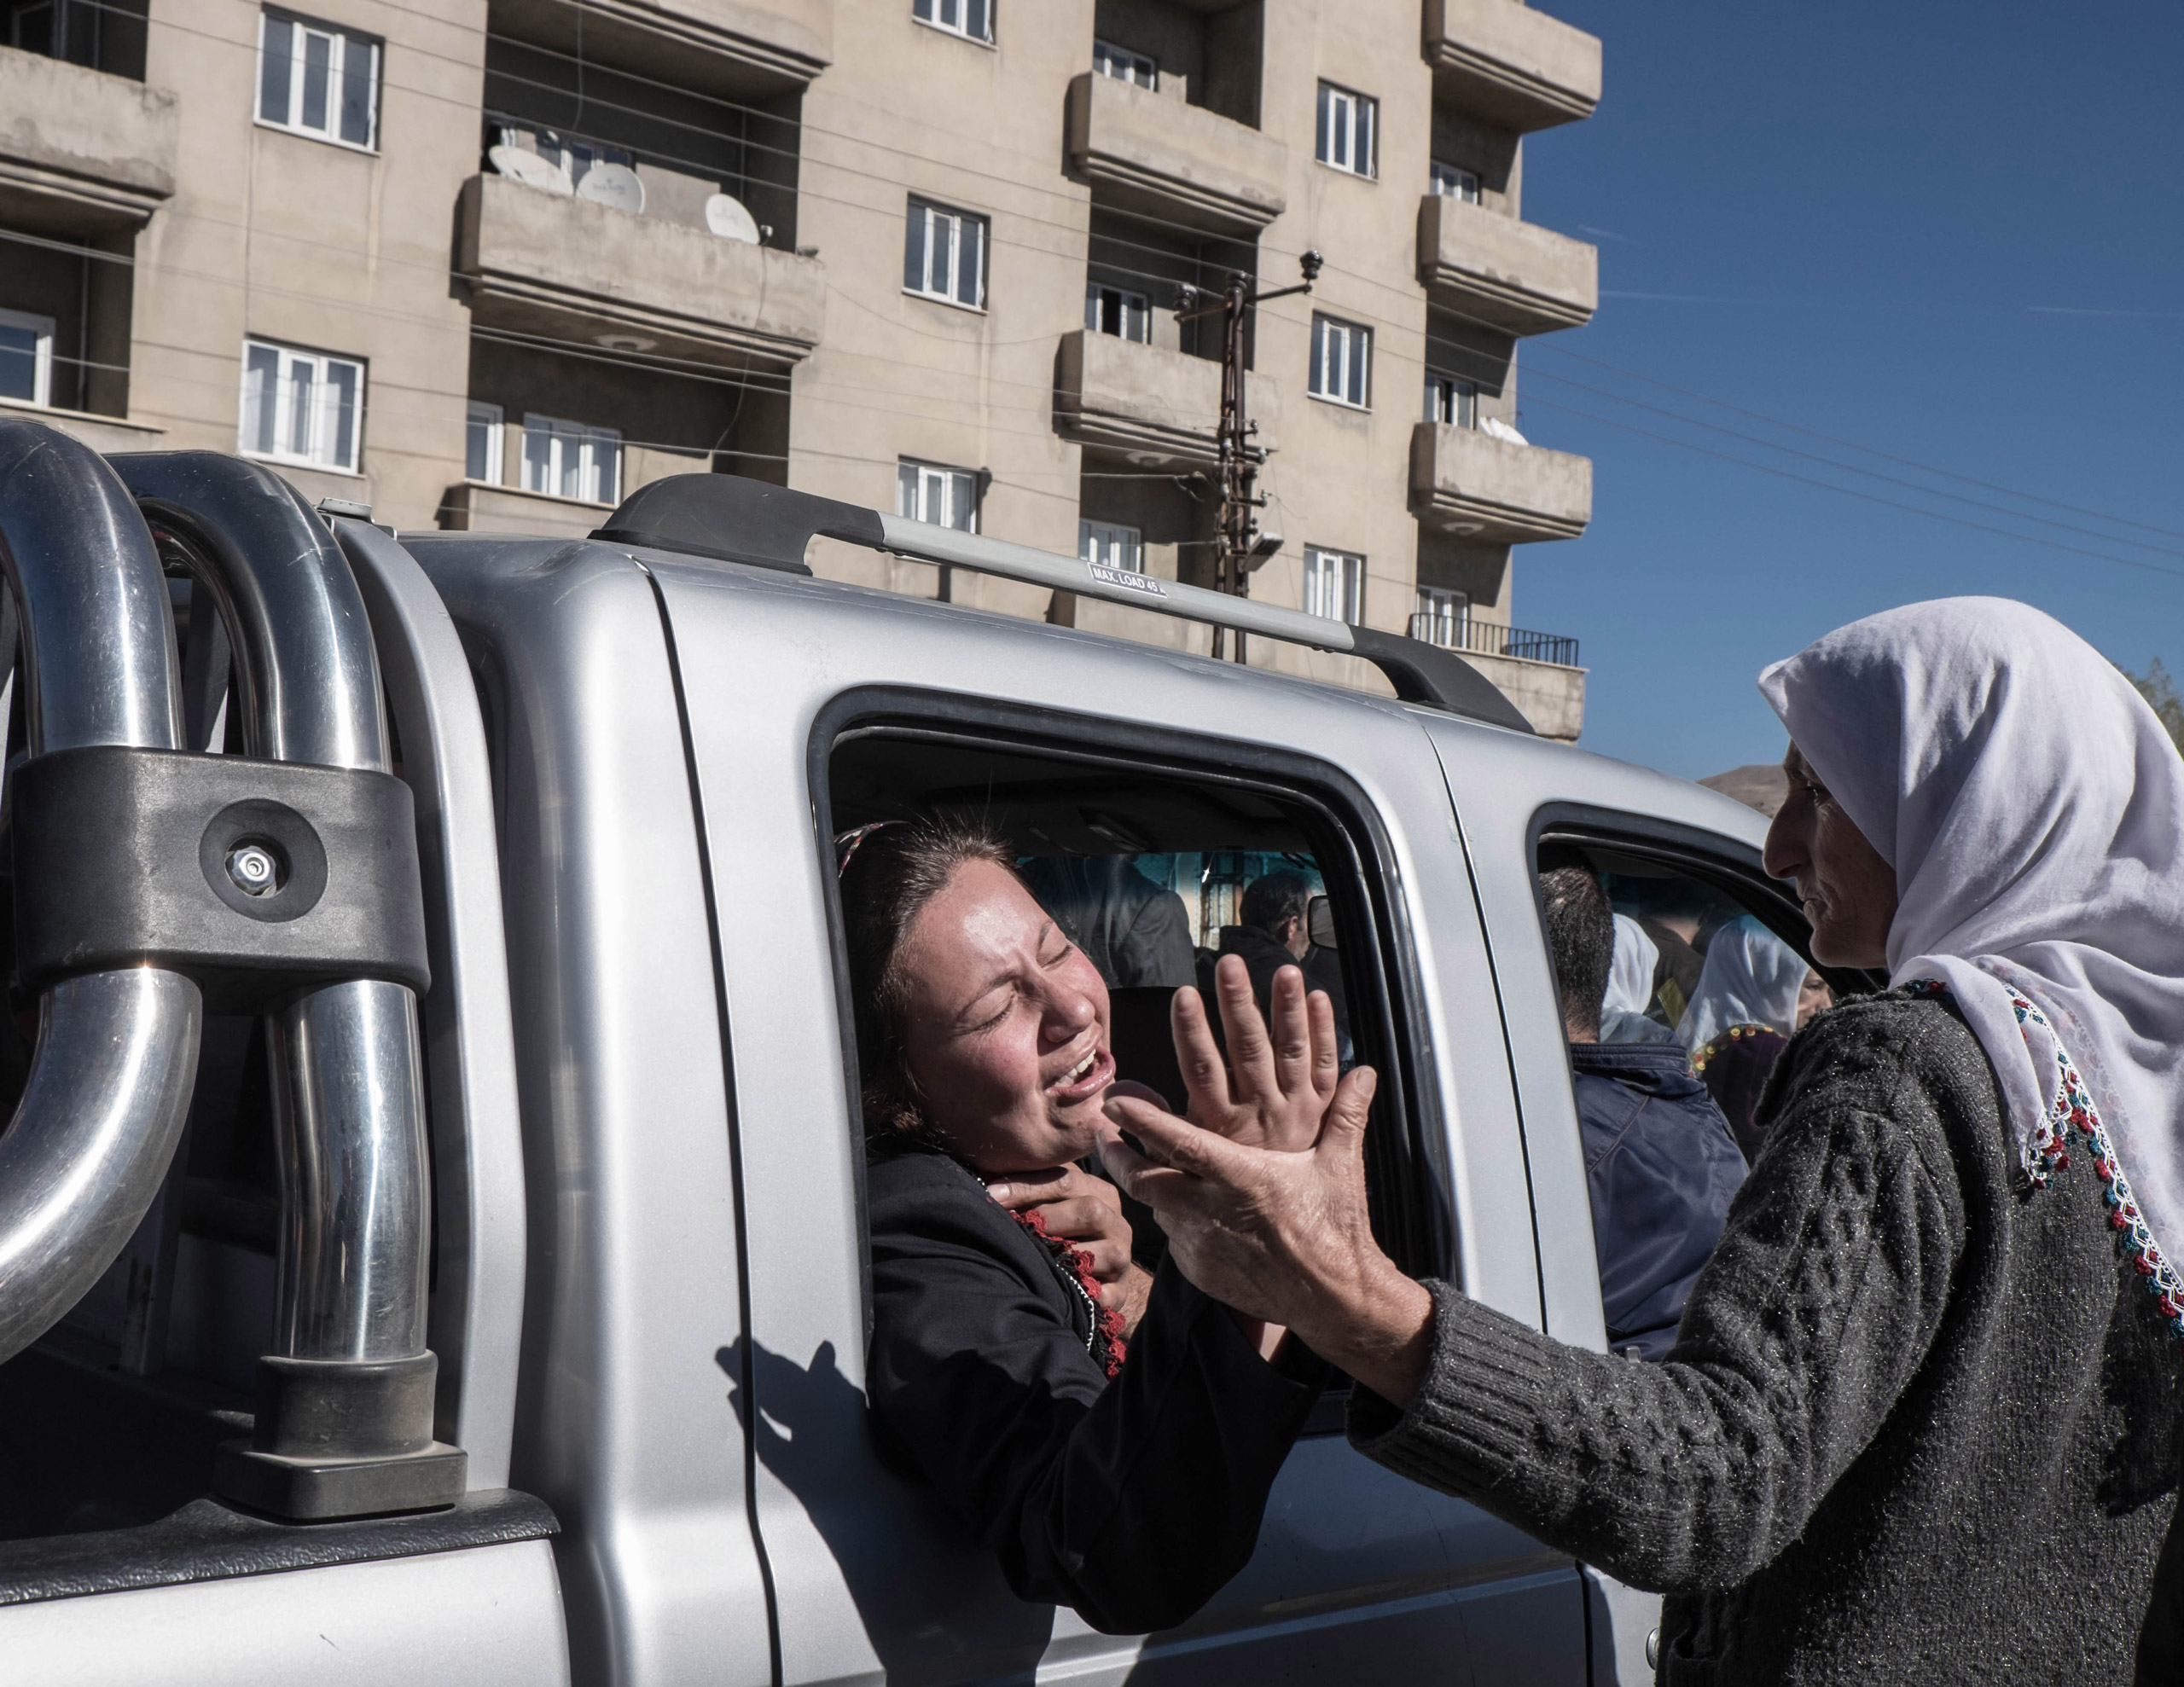 The funerals of Cetin Dara (18) and Dogan Dogma (20), two young Kurds shot to death by a Turkish sniper during a clash in Cumhuriyet, a self declared autonomous neighborhood in Yuksekova, Turkey, on Nov. 3, 2015. Clashes broke out after the police tried to enter into the neighborhood in the early morning.